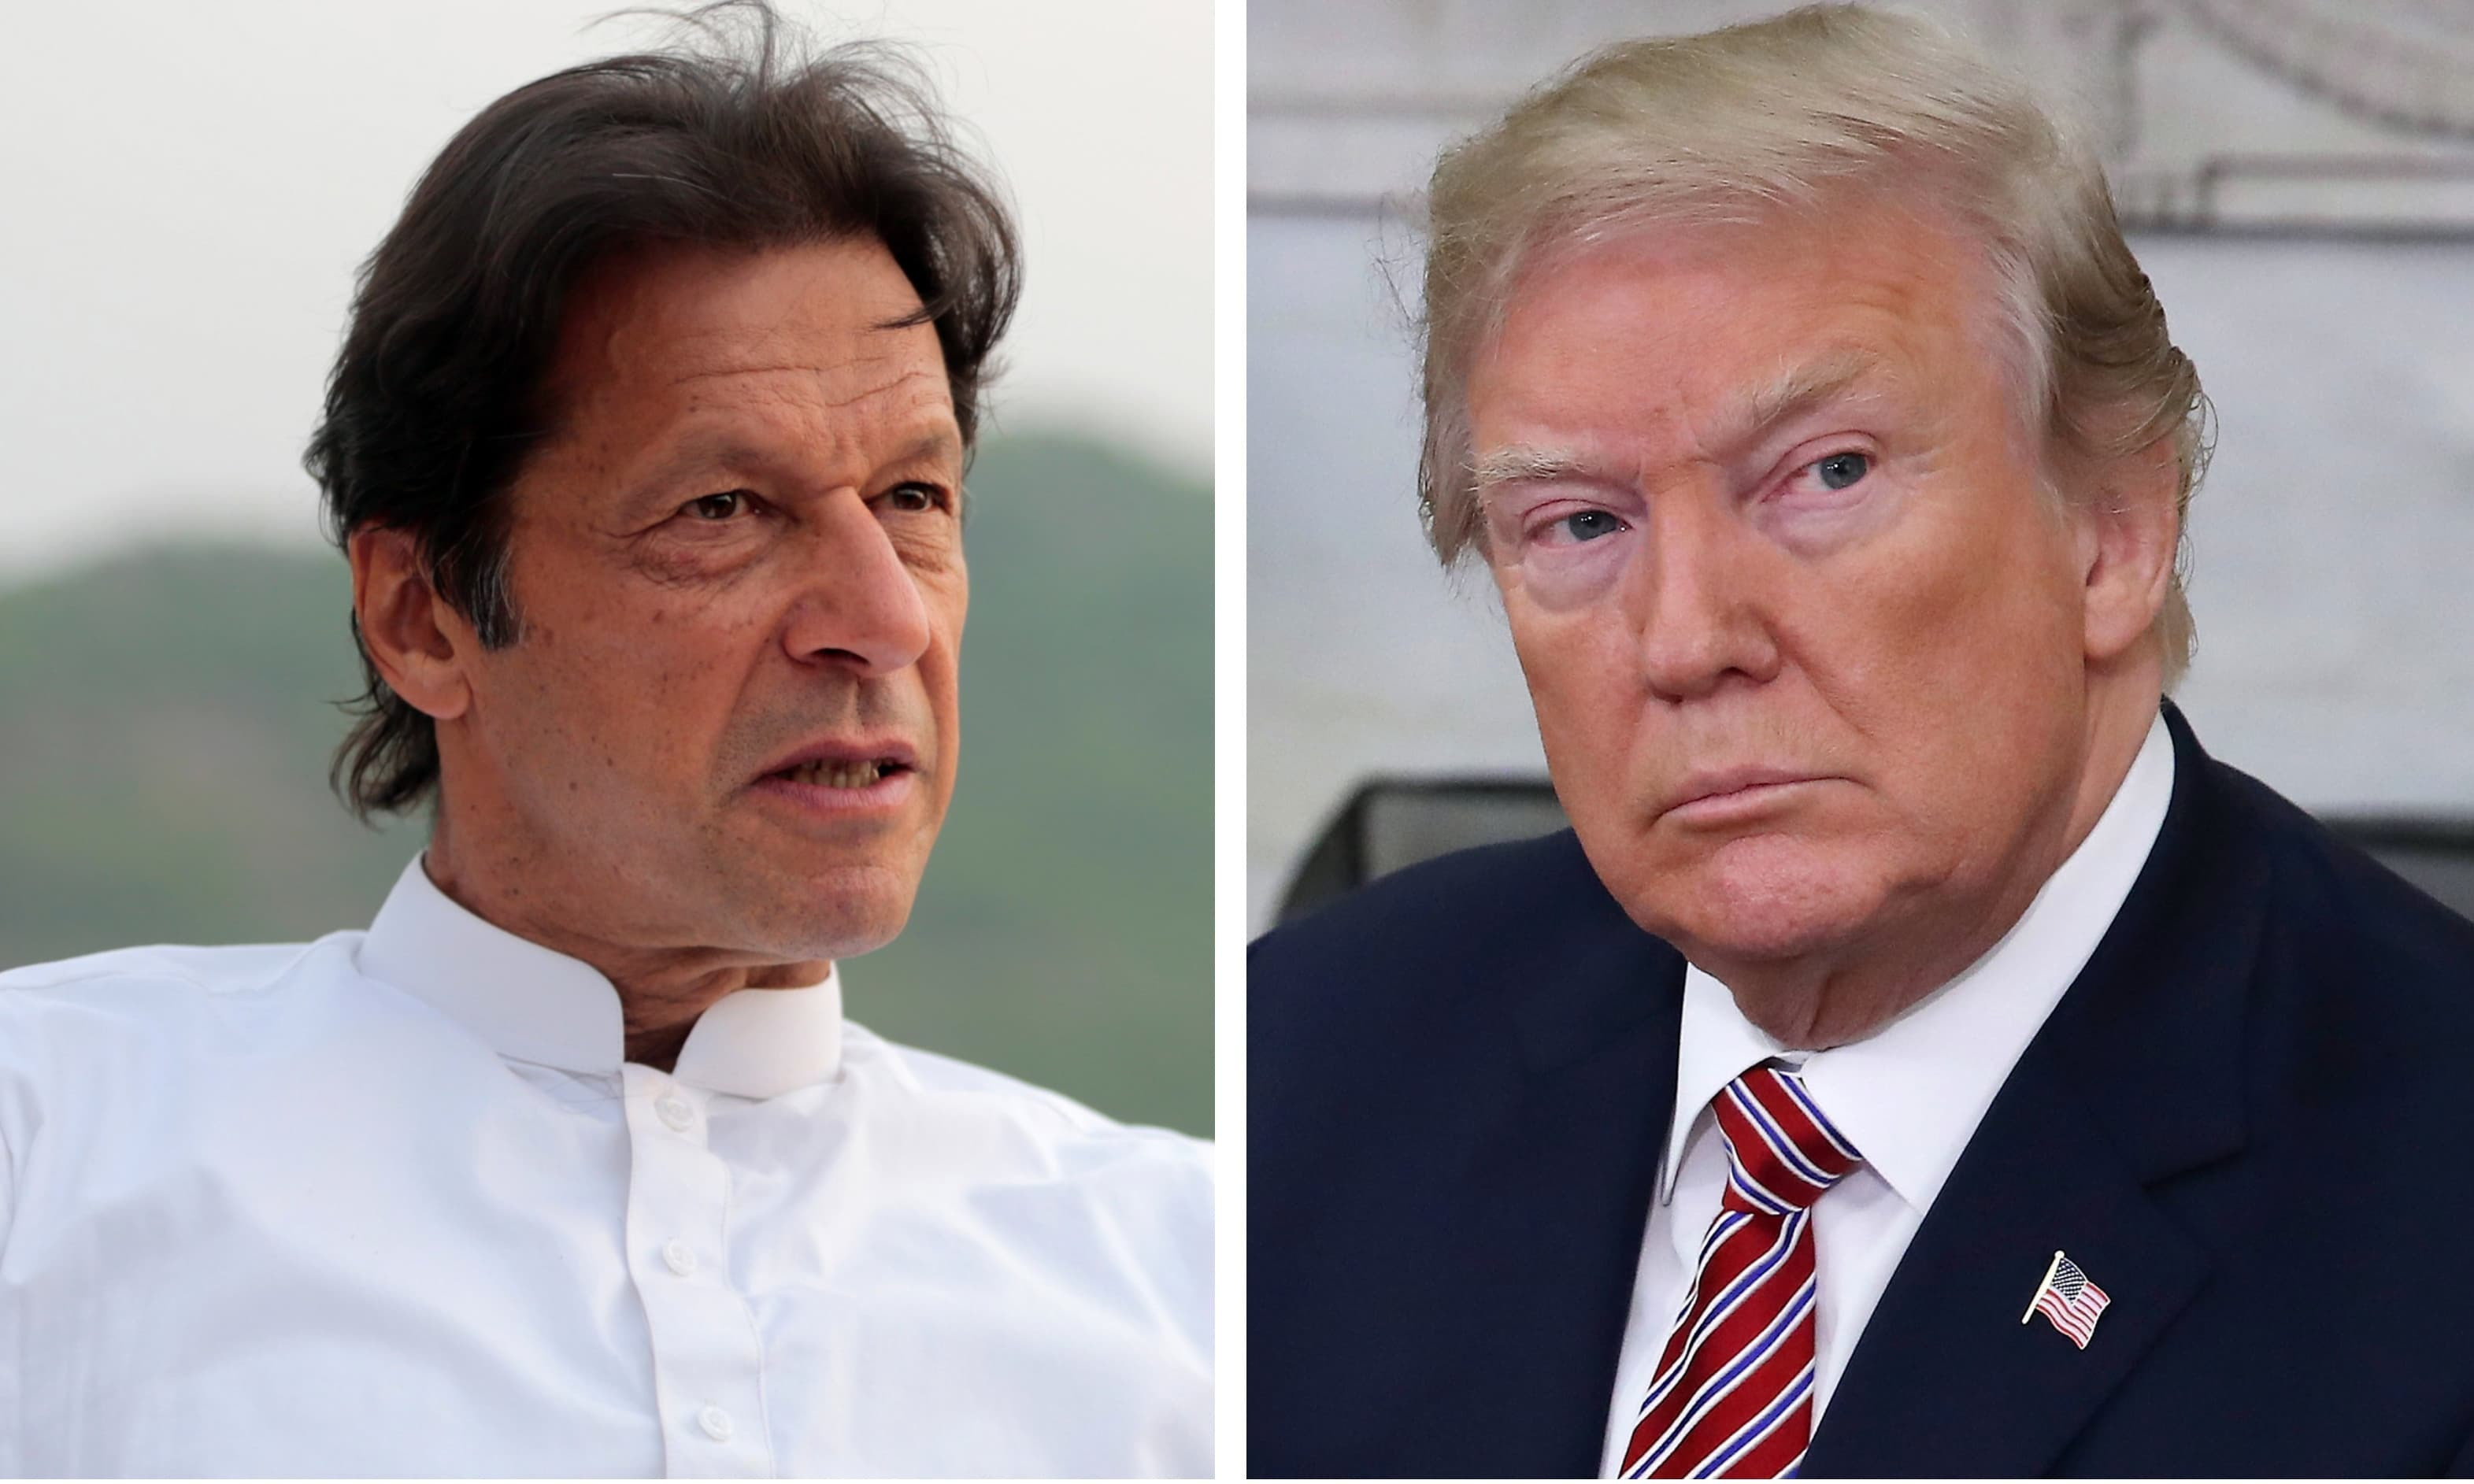 Prime Minister Imran Khan to meet US President Donald Trump on July 22. — File photos